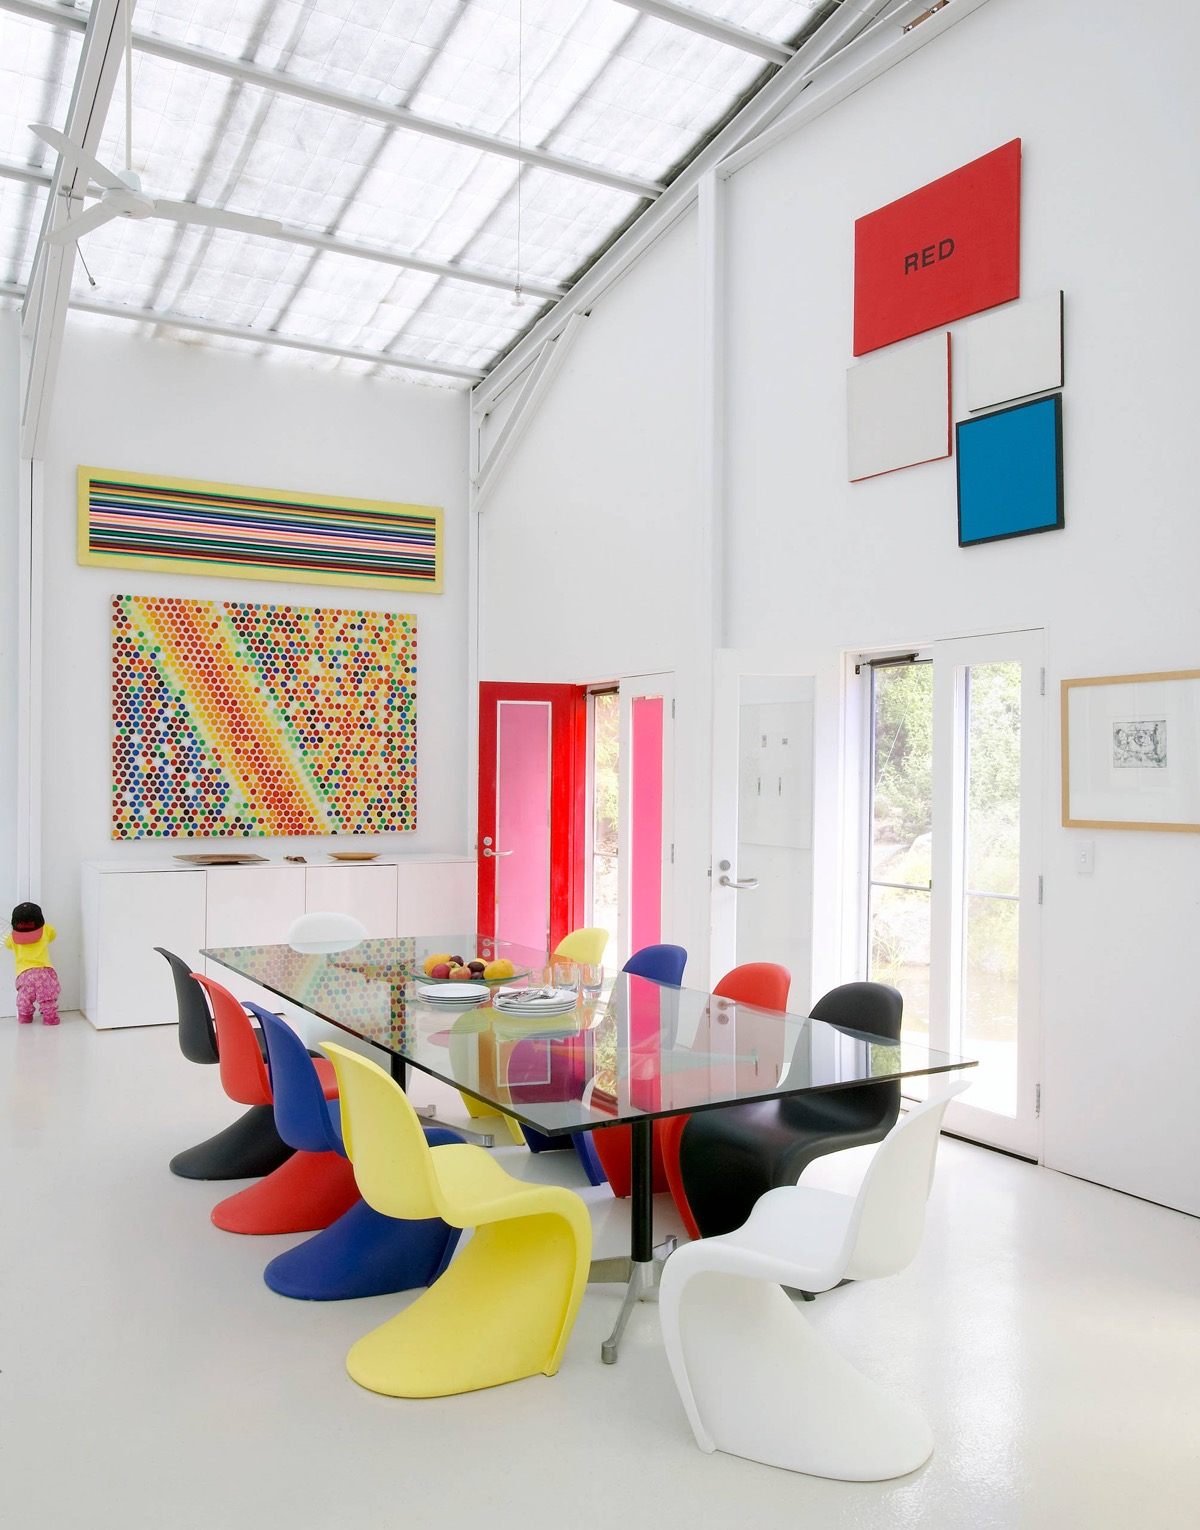 Piet Mondrian Inspired Interior Design To Give Your Home The De Stijl Flair images 32